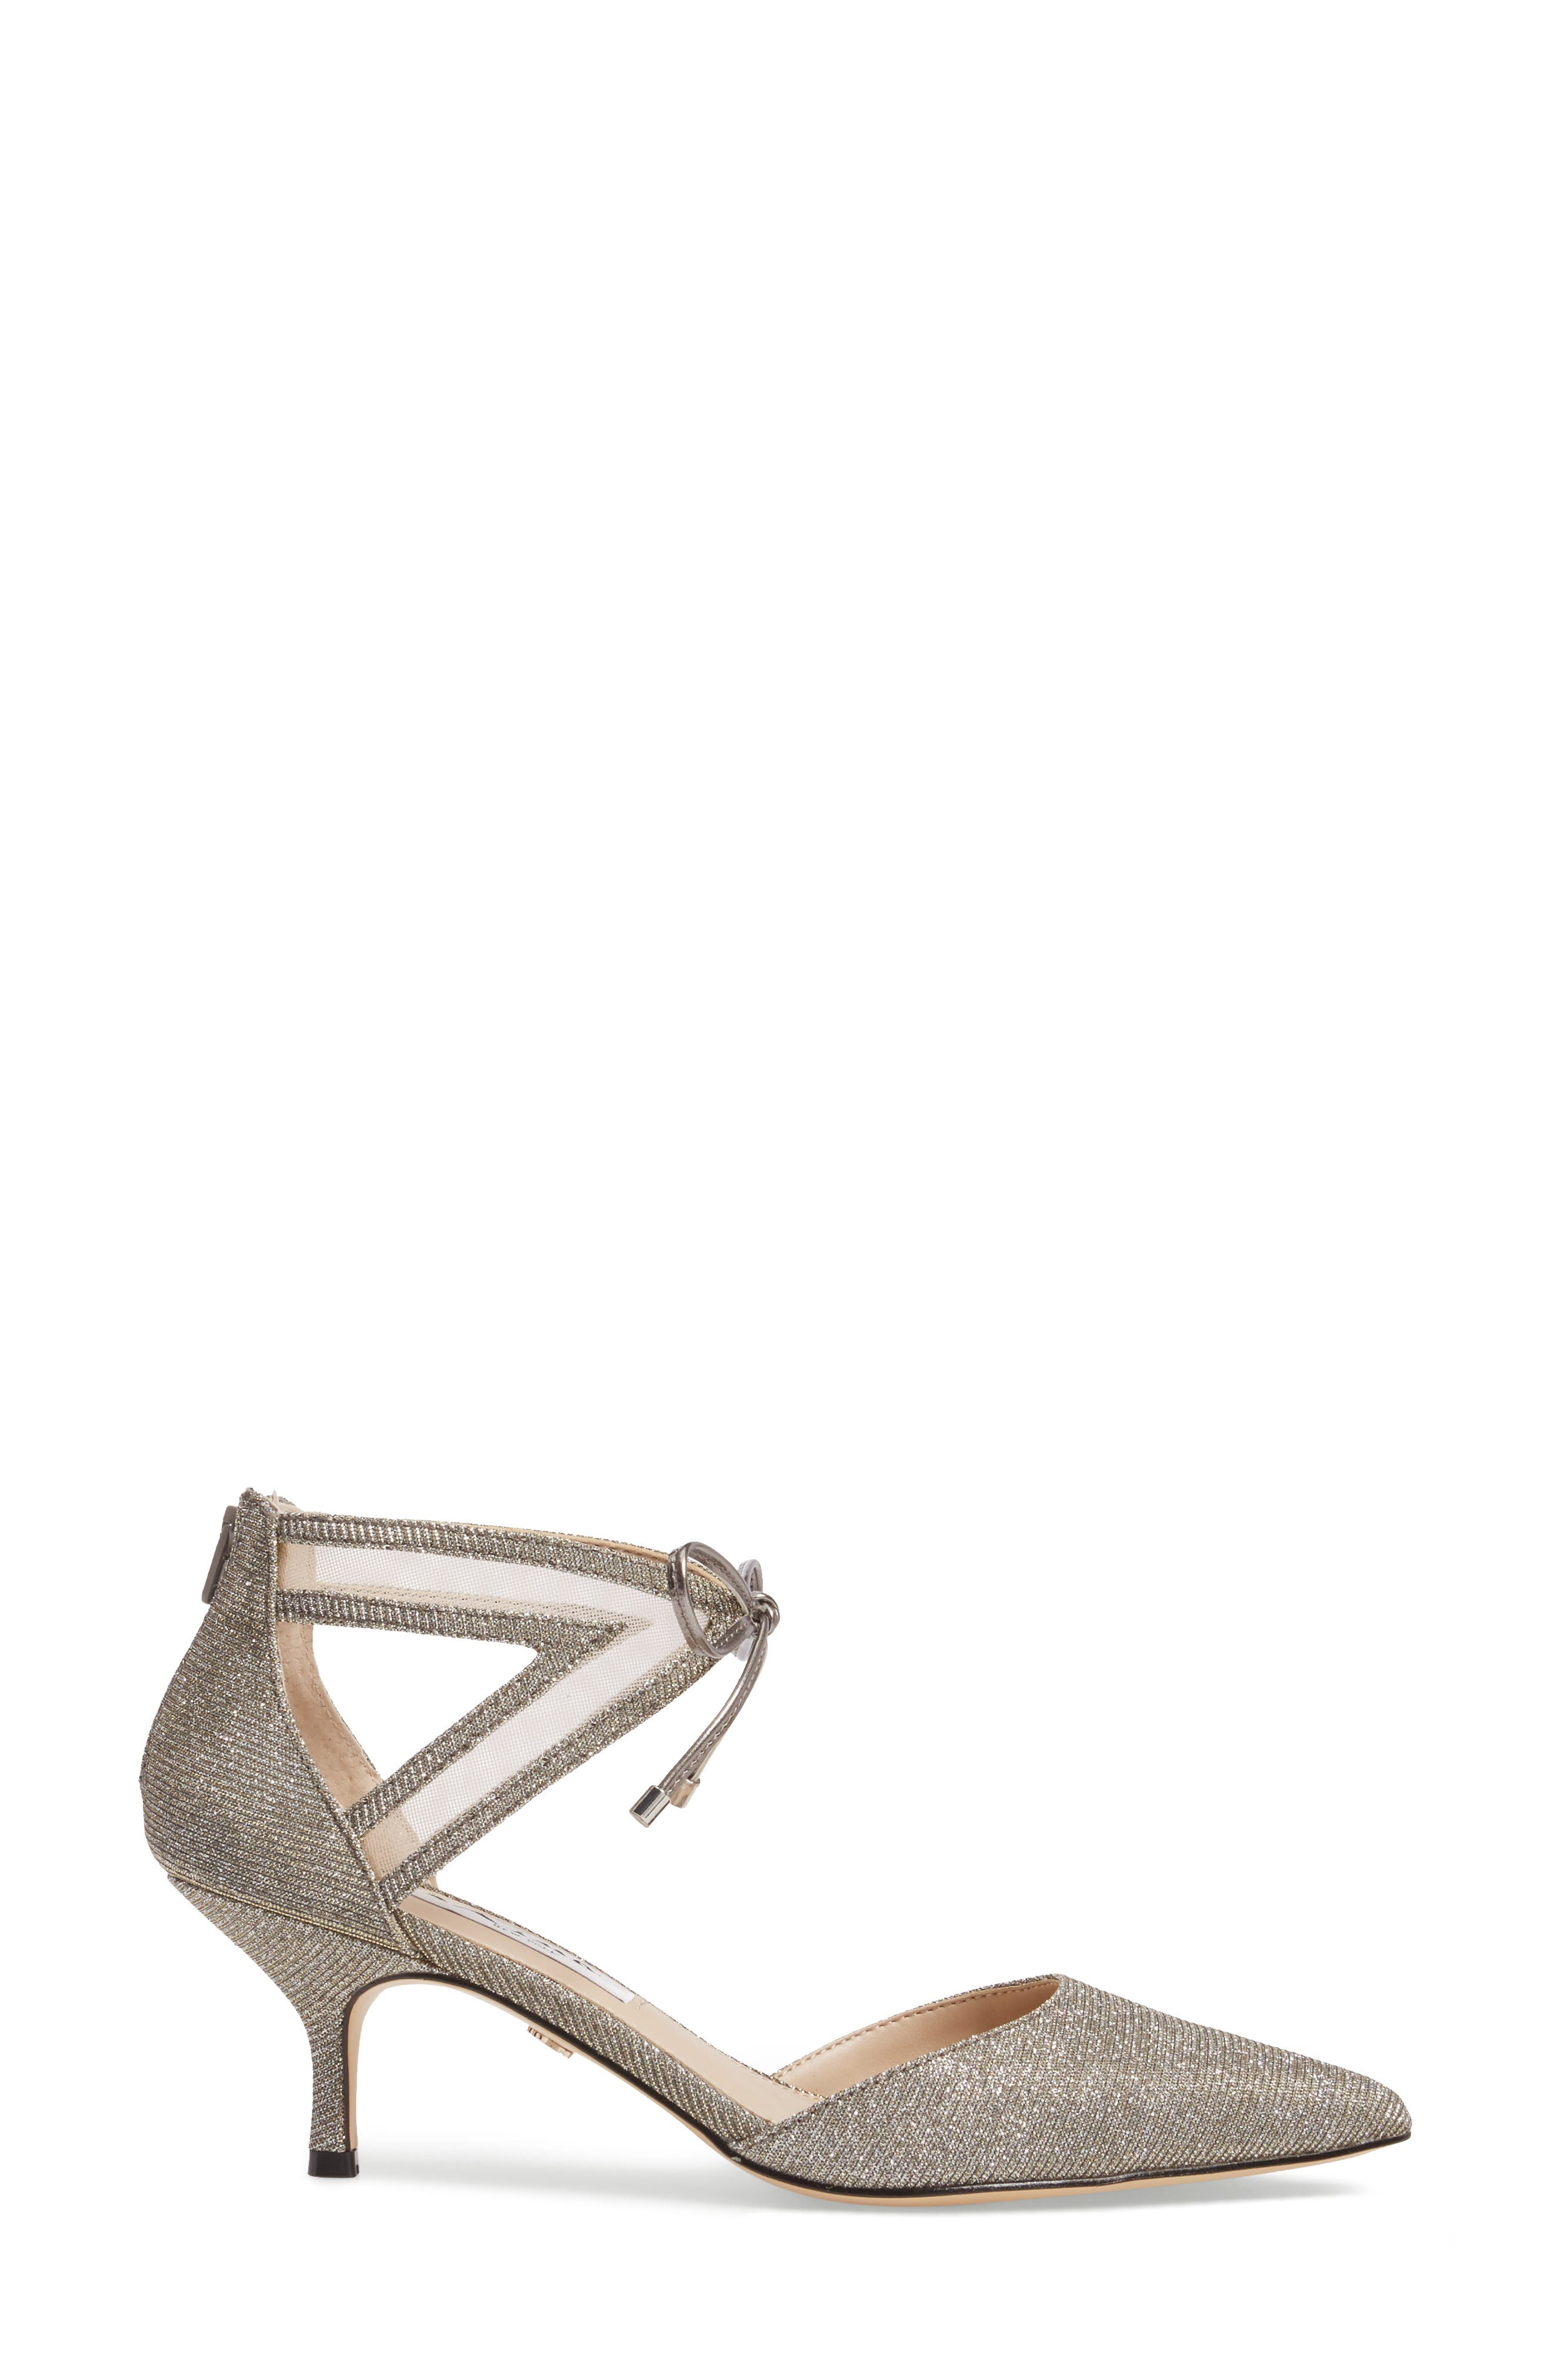 Talley Pointy Toe Pump,                             Alternate thumbnail 3, color,                             Steel/ Champ Metallic Fabric